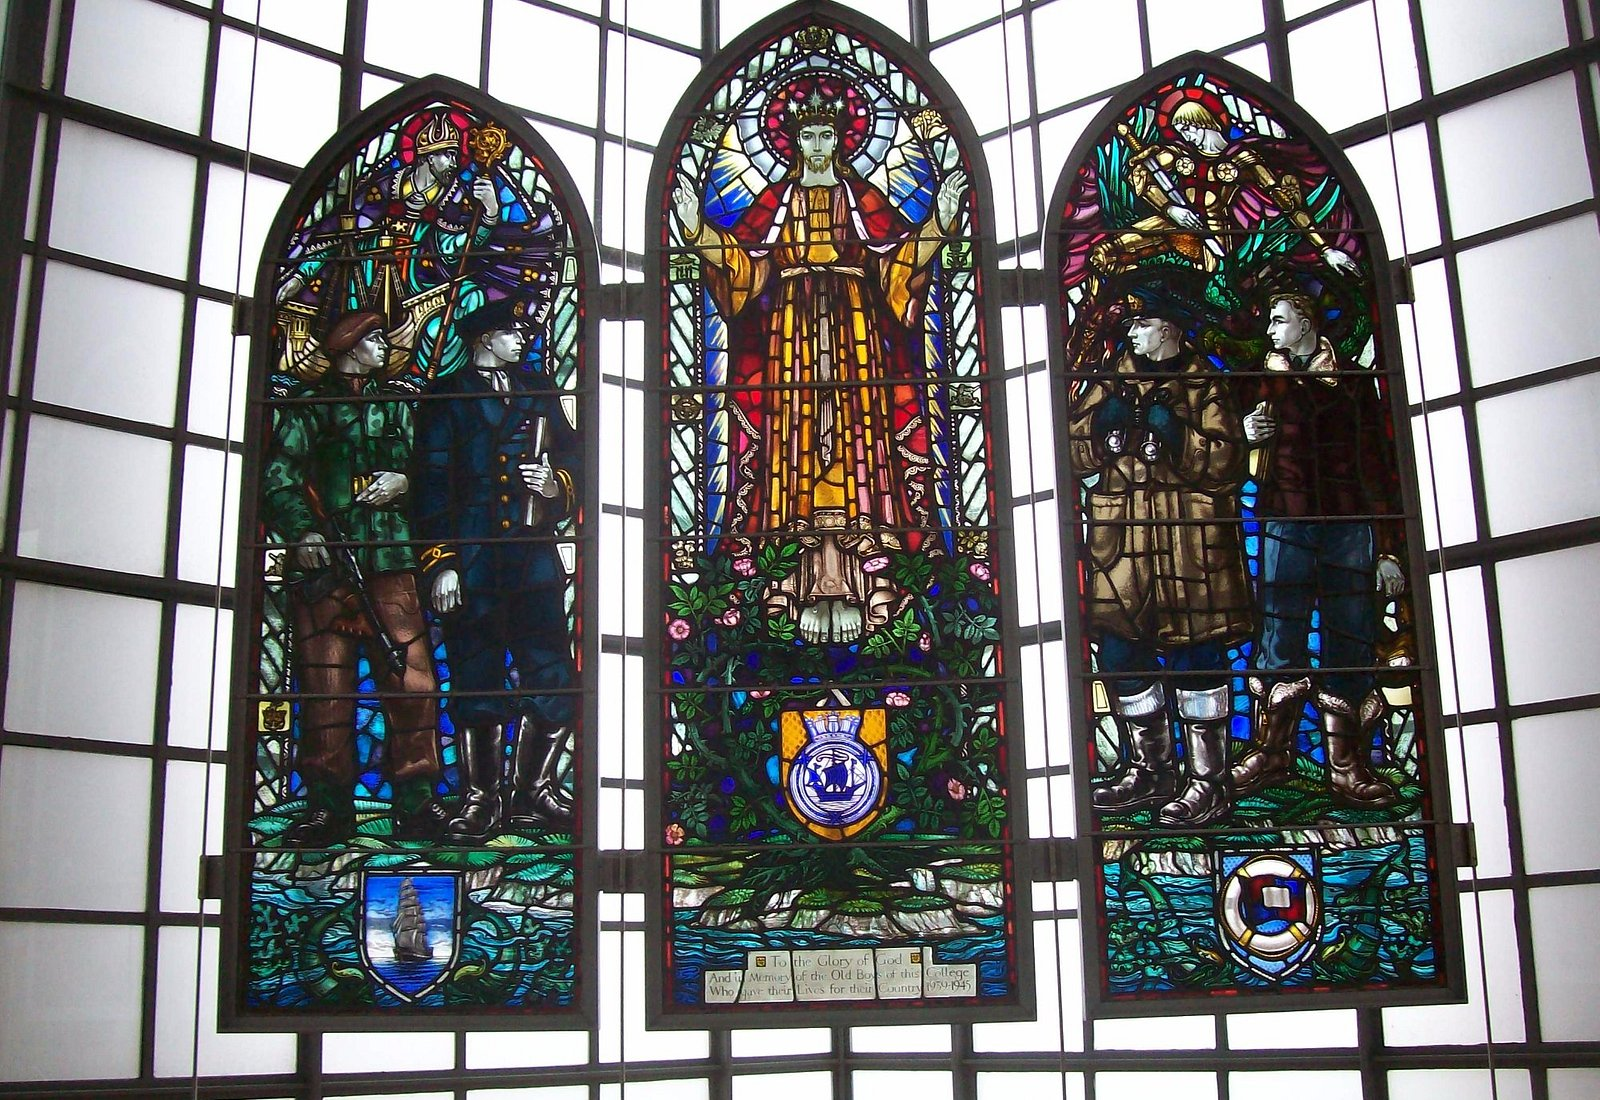 Old Pangbournian Stained Glass Windows in memory of 177 Pangbourne College Students who died in